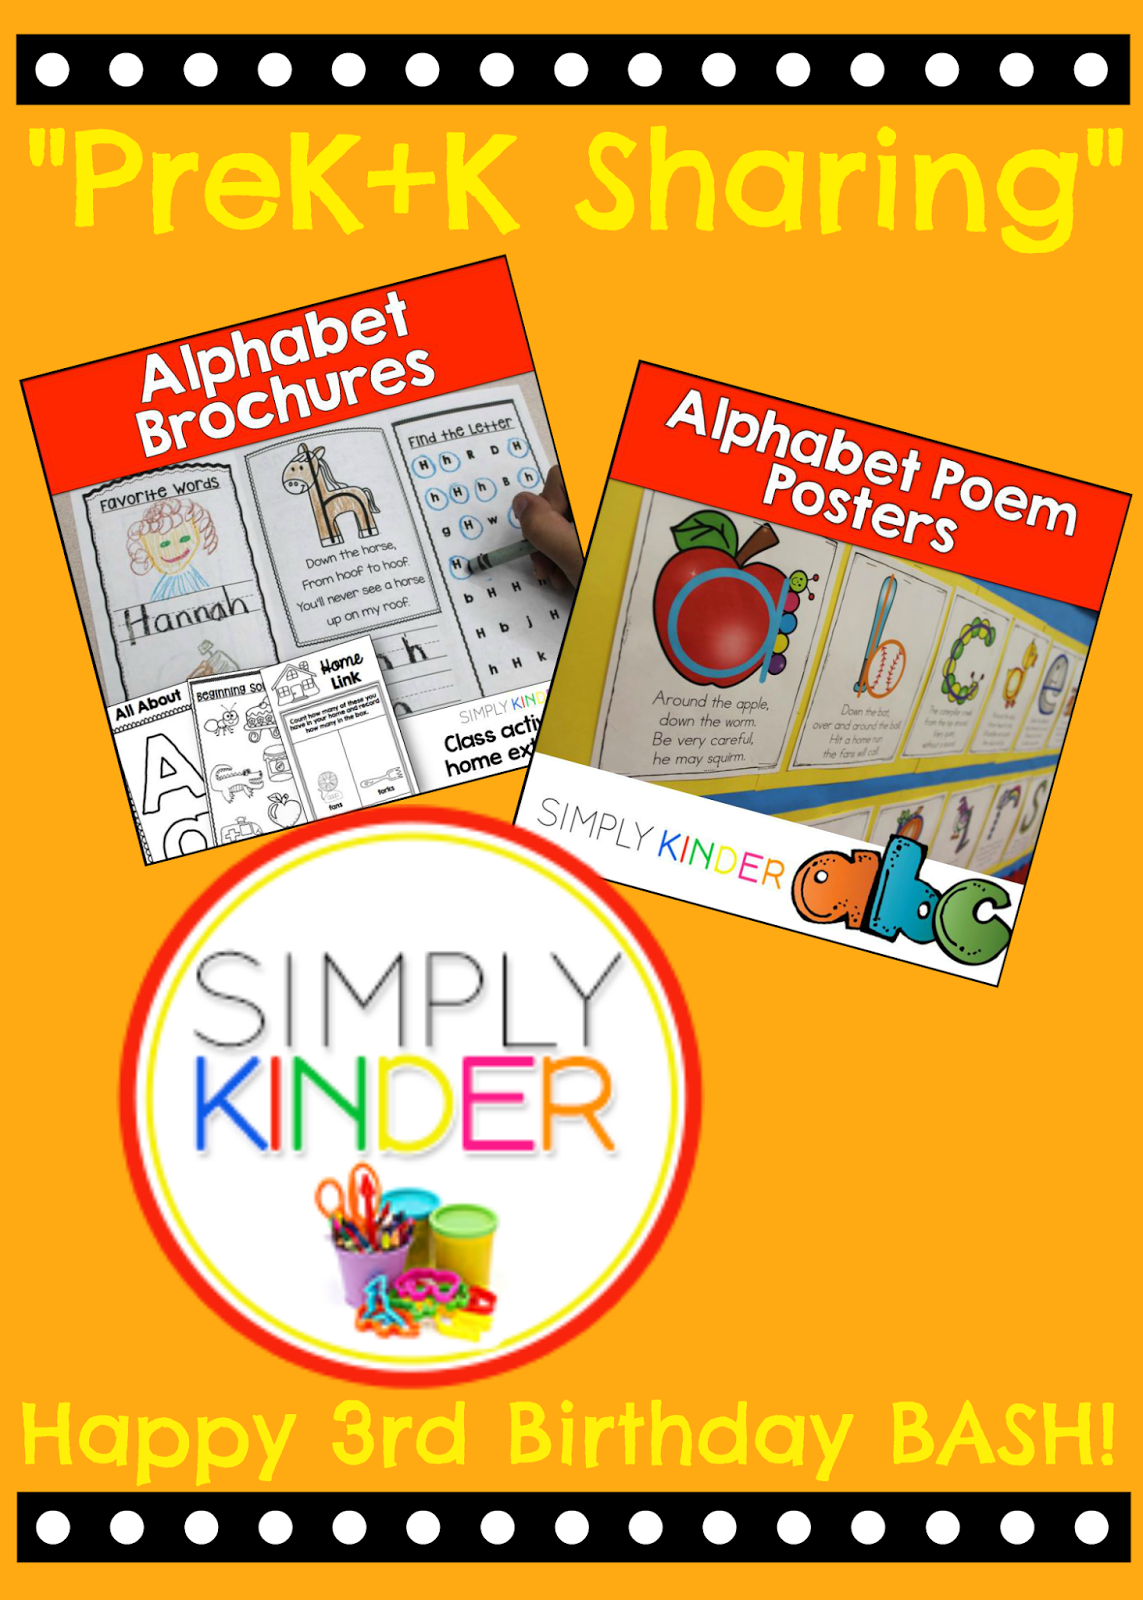 PreK+K Sharing Collaboration: THIRD Birthday Celebration Give Away prizes from Simply Kinder